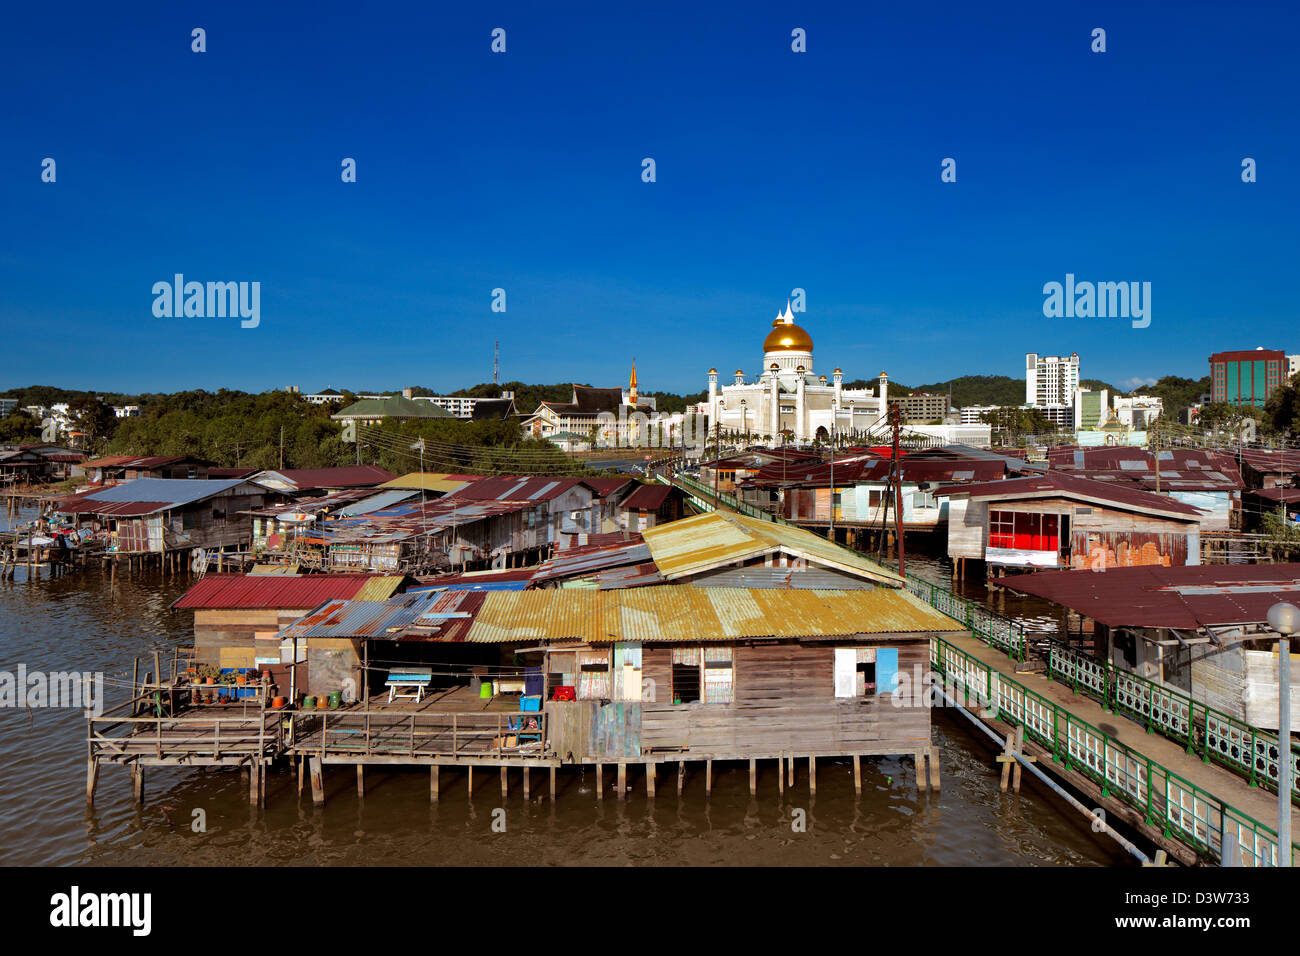 Brunei's capital Bandar Seri Begawan famed water village. Sultan Omar Ali Saifuddien Mosque contrasts with the - Stock Image